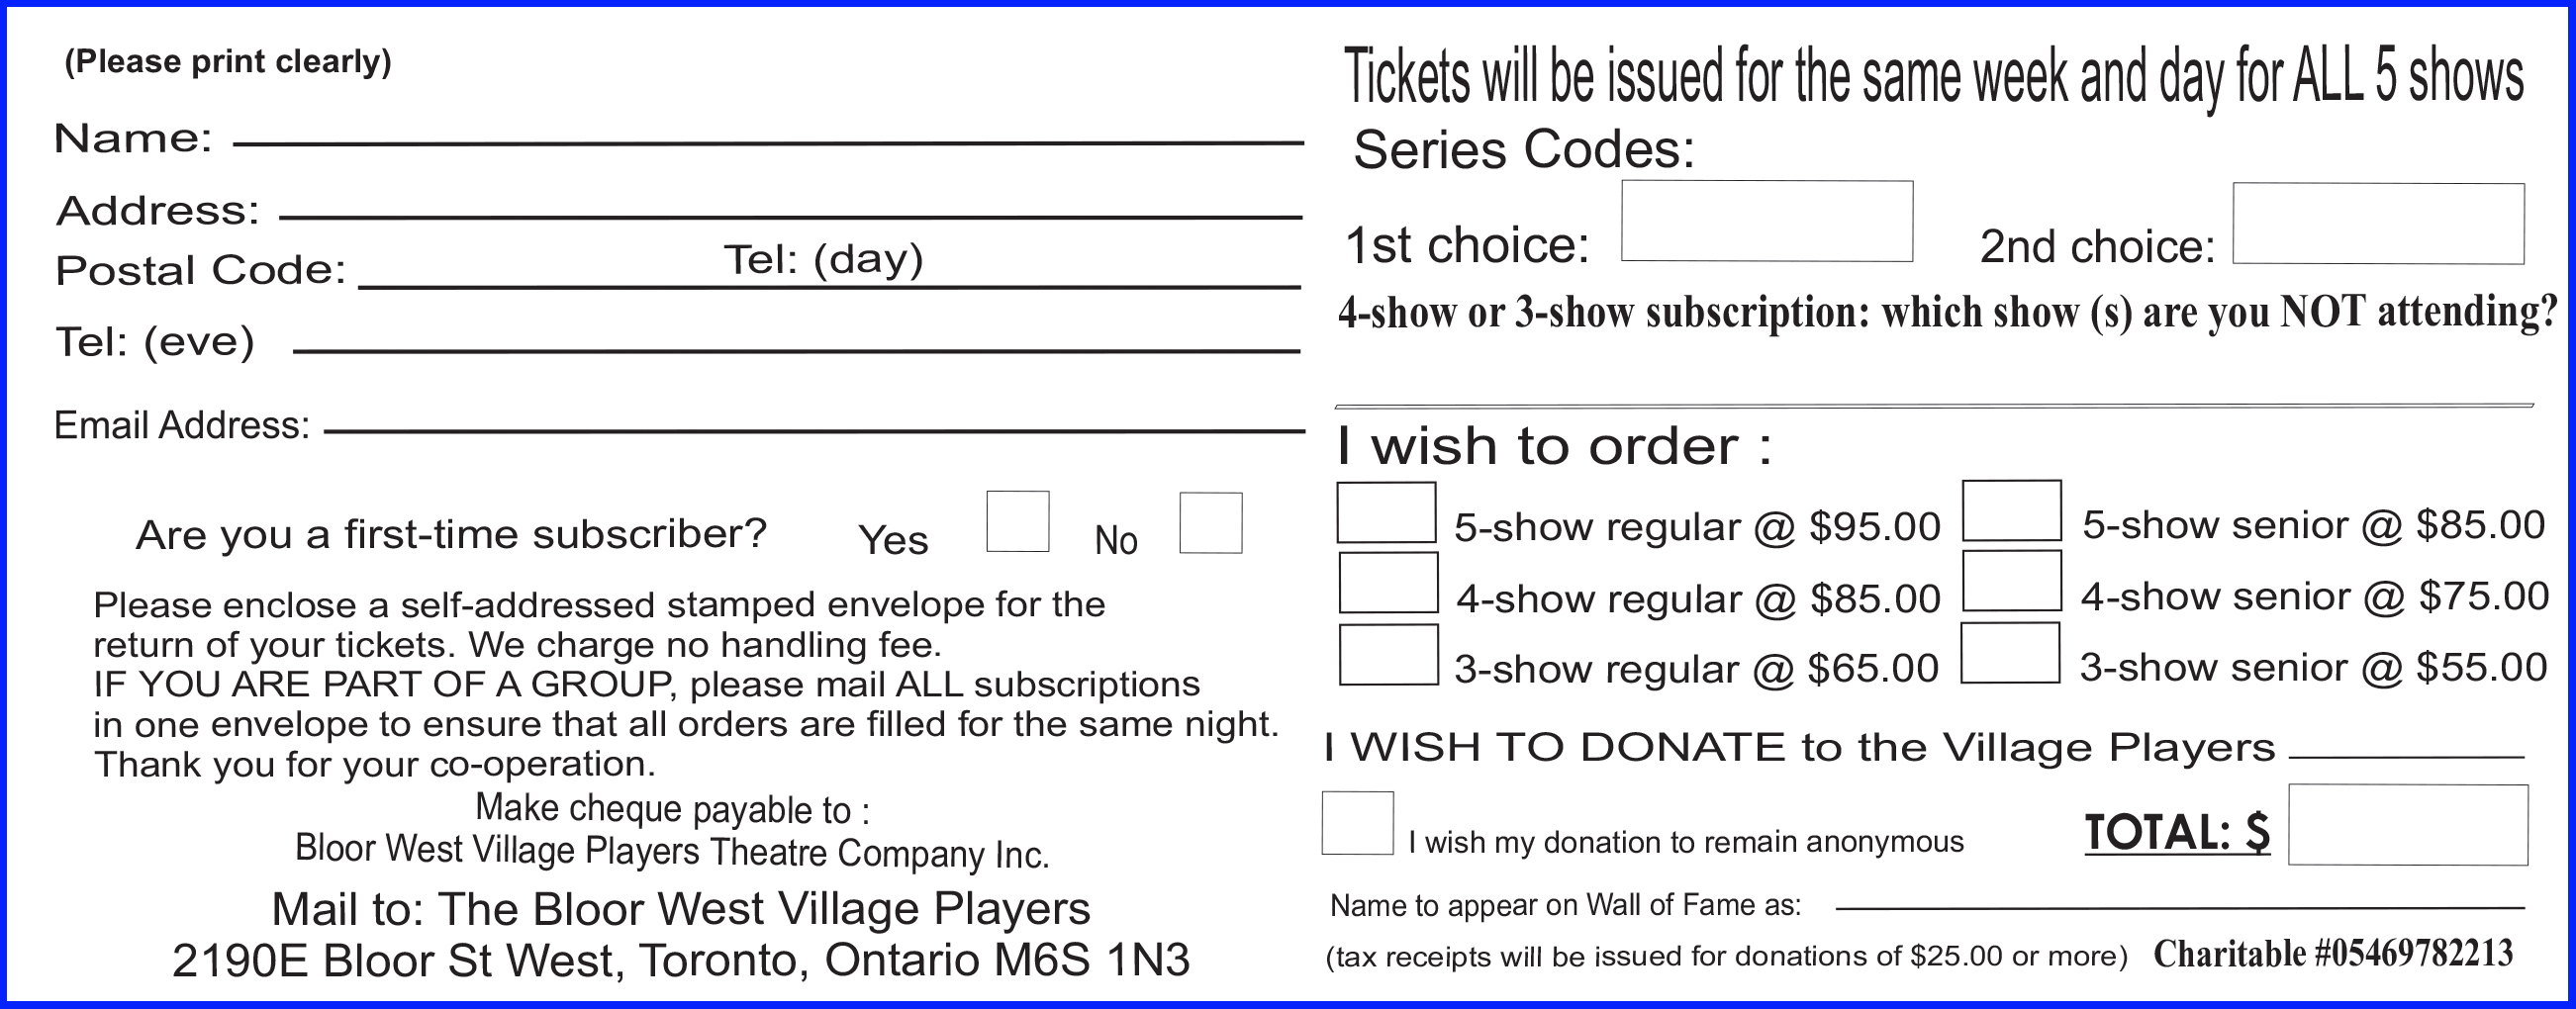 A Subscription Consists Of A Strip Of 3 Tickets With Dates As Shown In The  Horizontal Line In The Chart Below. To Order, Simply Pick A Preferred  Series Code ...